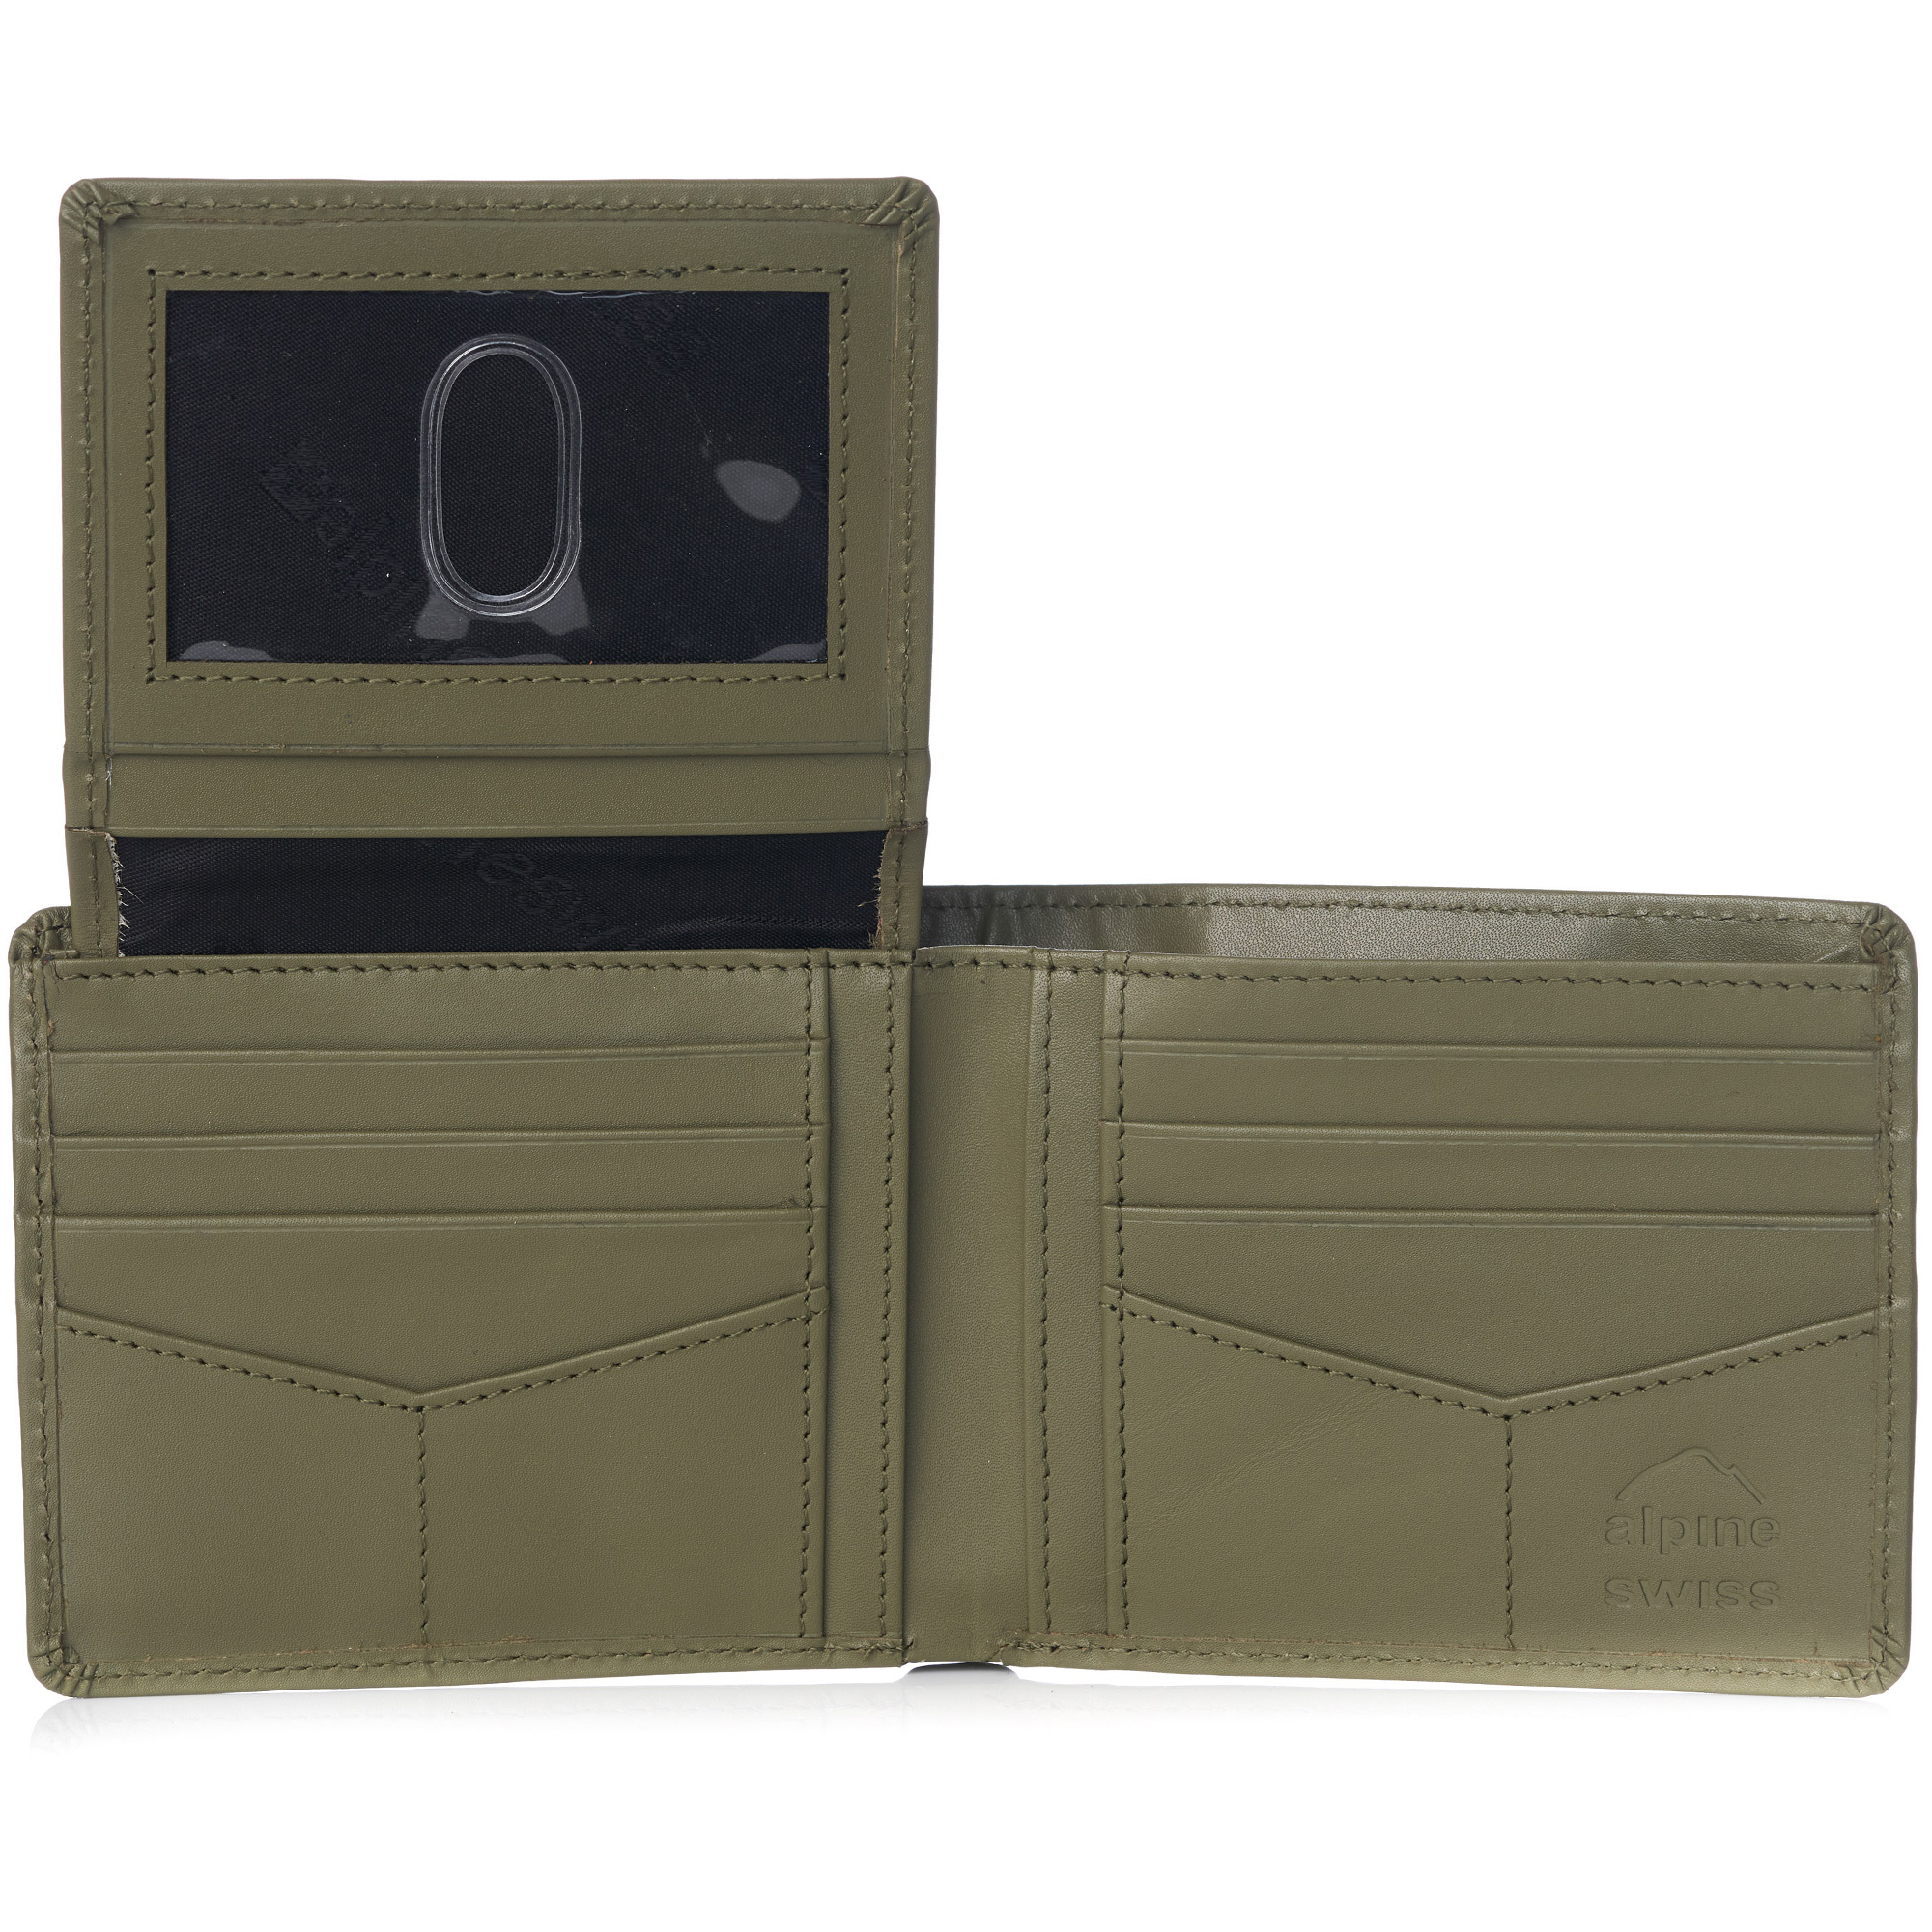 miniature 83 - Alpine-Swiss-RFID-Mens-Wallet-Deluxe-Capacity-Passcase-Bifold-Two-Bill-Sections